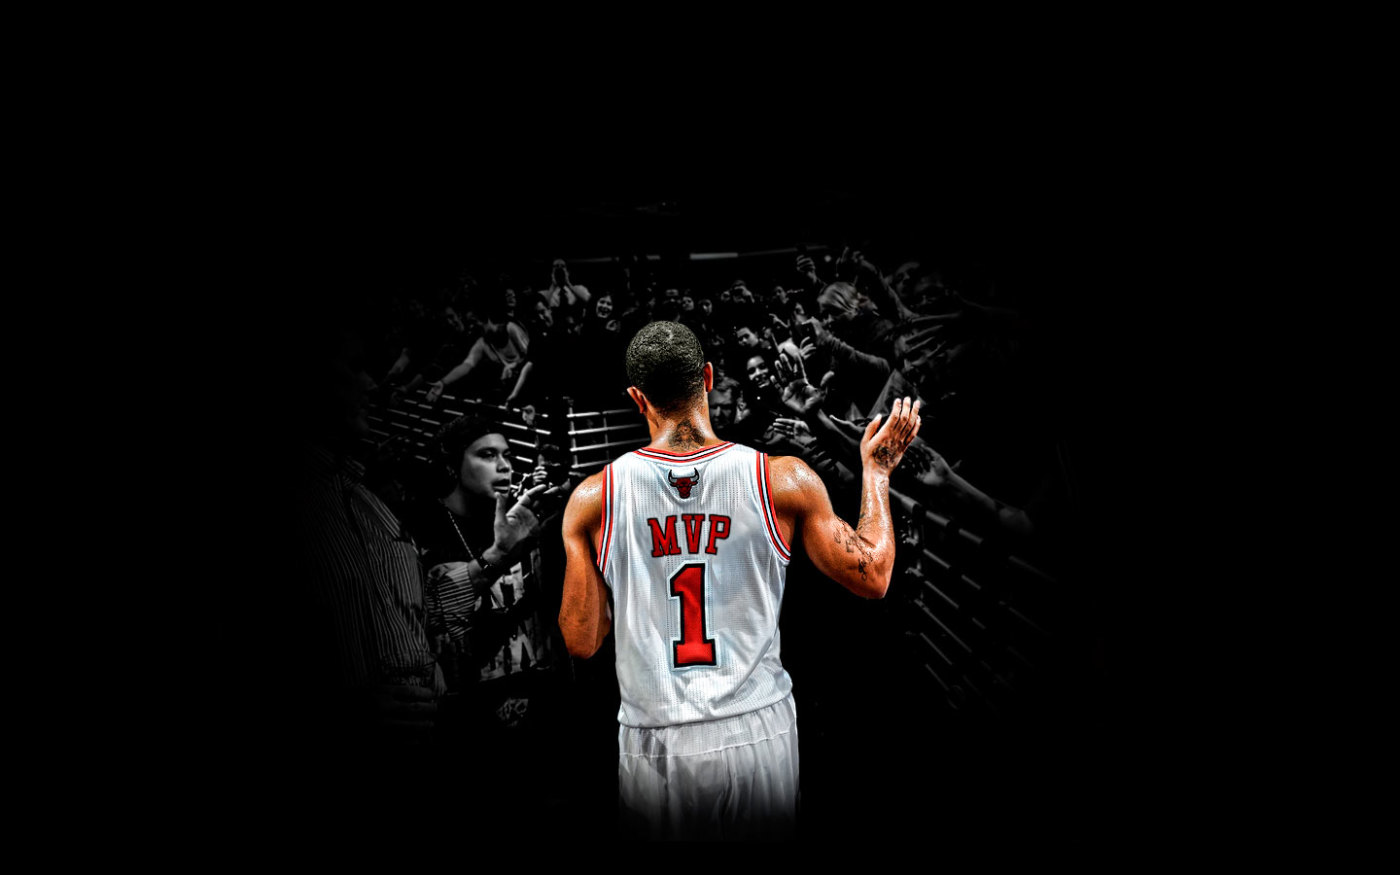 Derrick Rose Crossover Wallpaper Derrick rose mvp 2011 1400x875